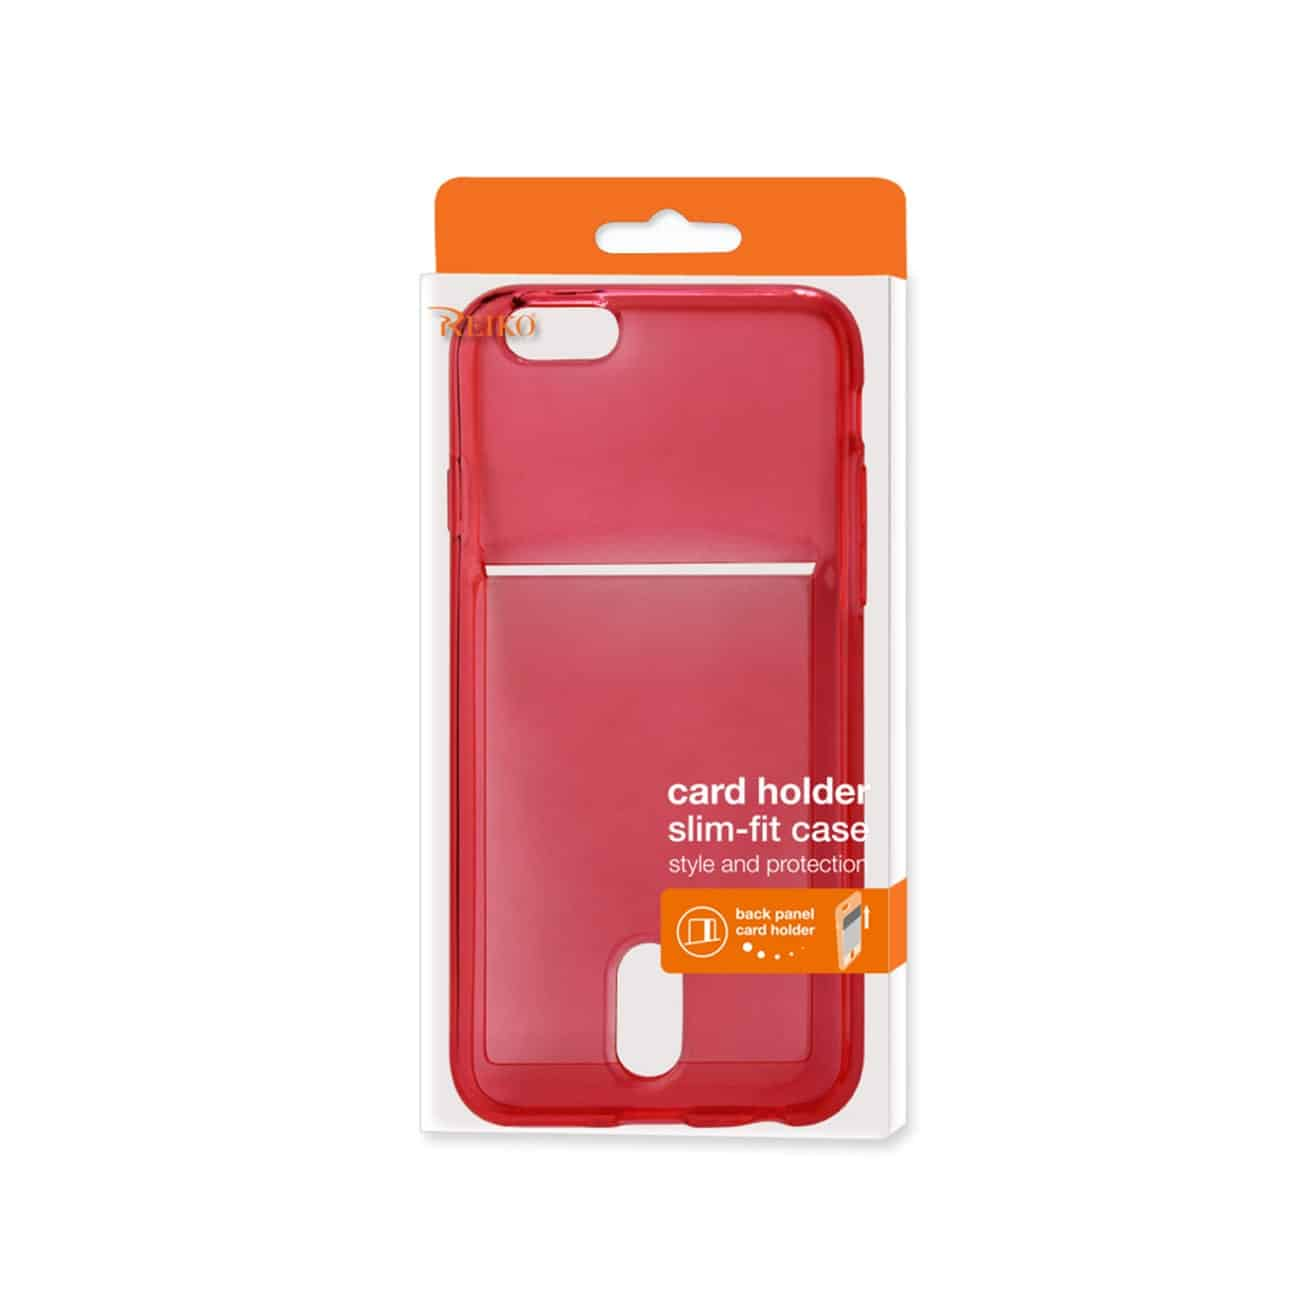 IPHONE 6 PLUS  SEMI CLEAR CASE WITH CARD HOLDER IN CLEAR RED